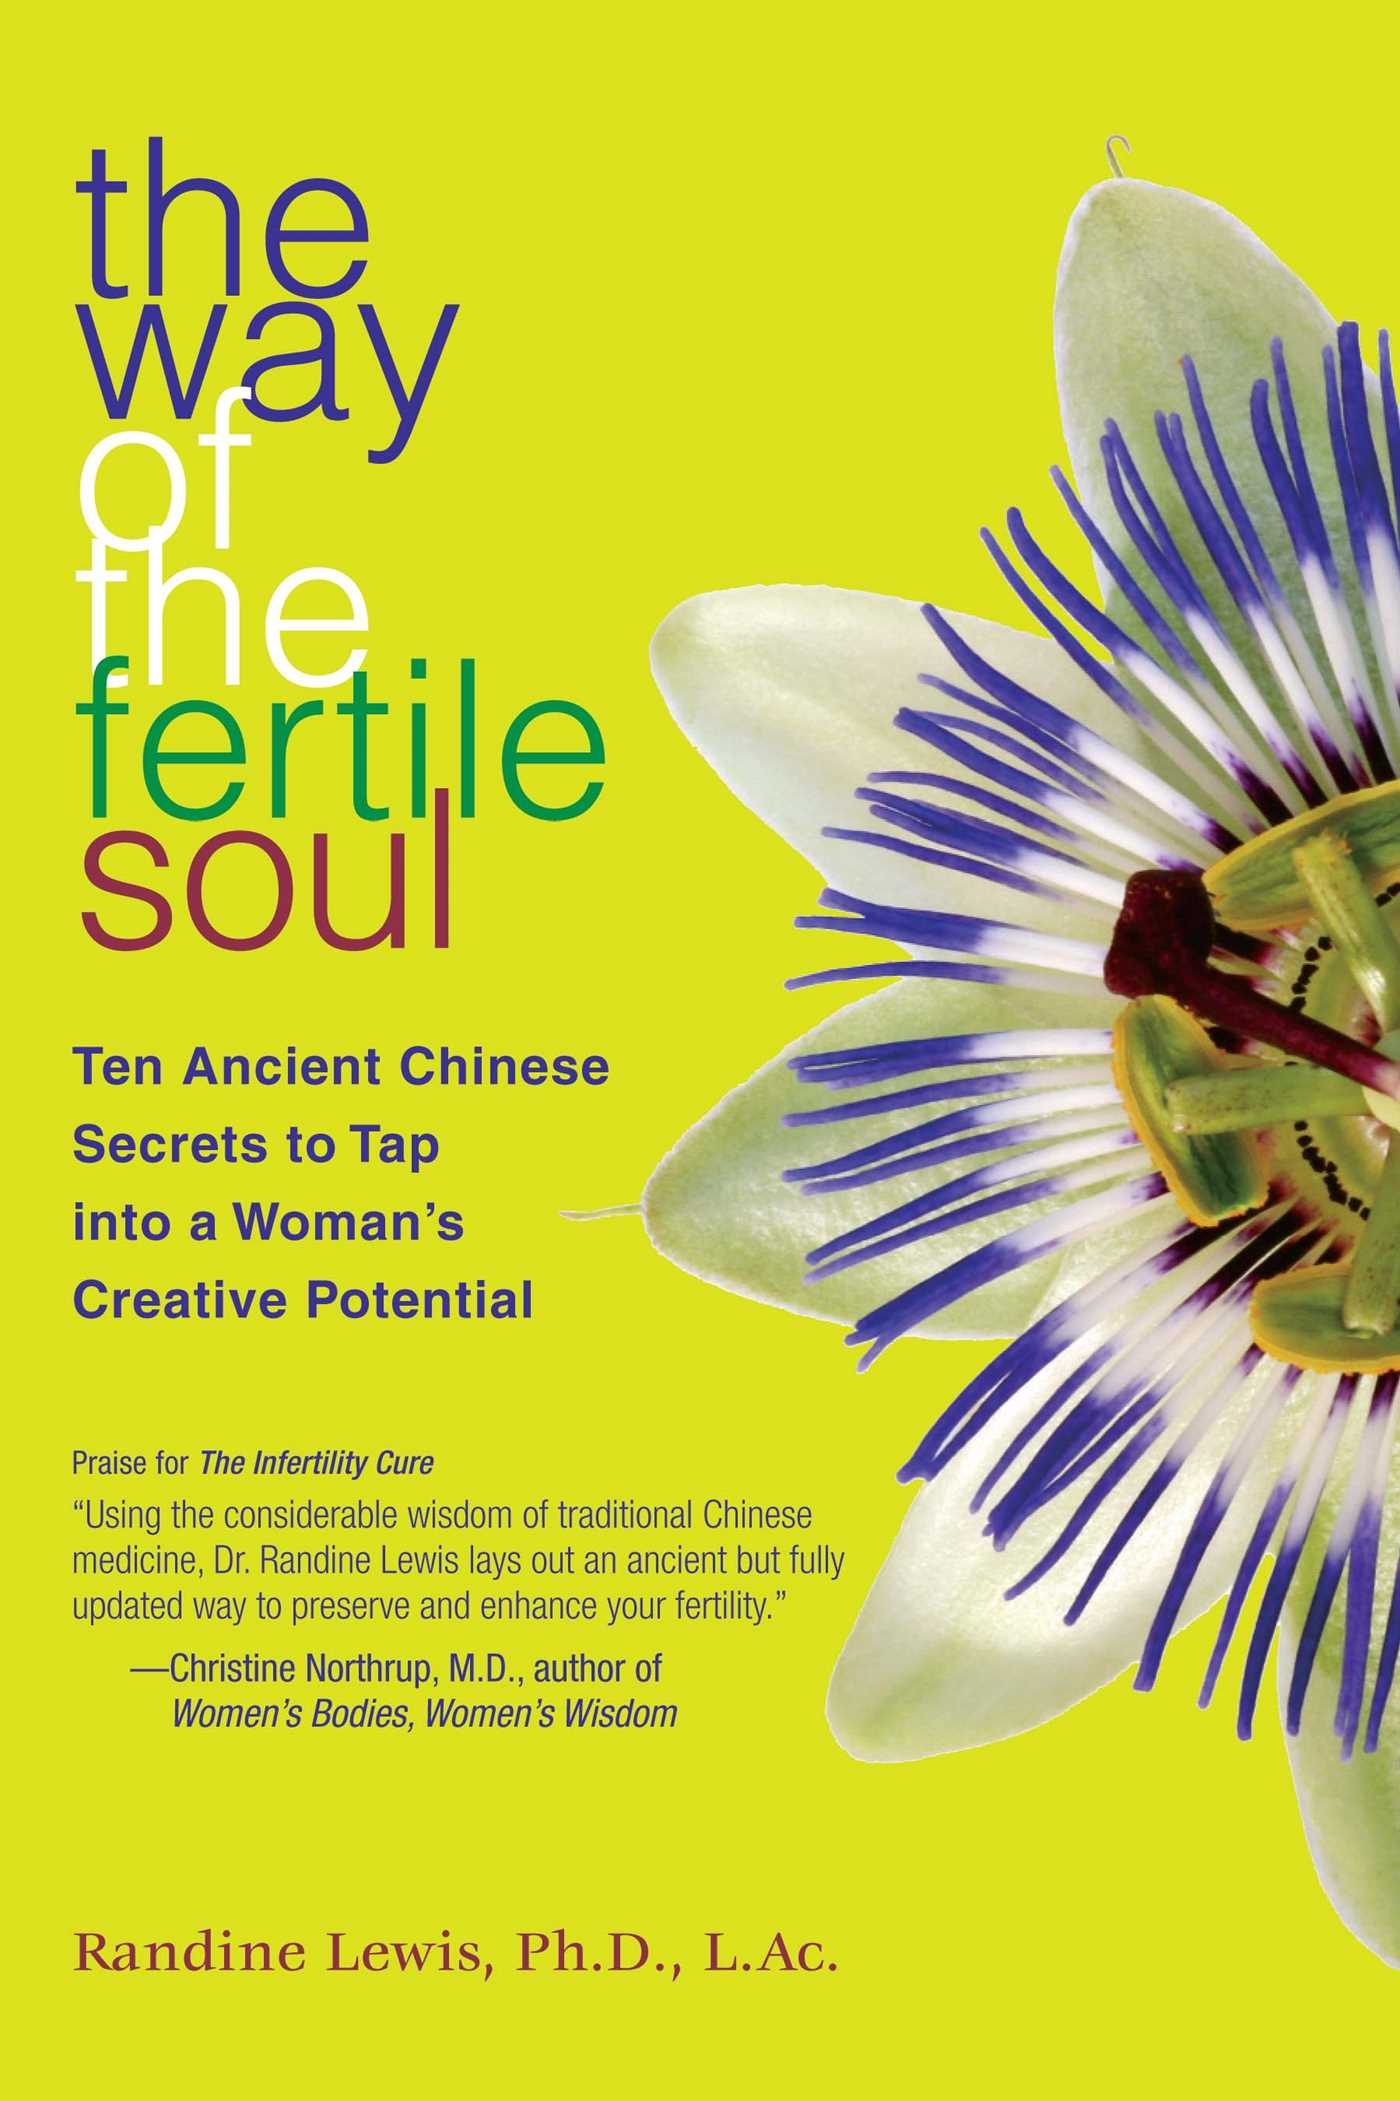 The way of the fertile soul book by randine lewis official ten ancient chinese secrets to tap into a womans creative potential fandeluxe Image collections